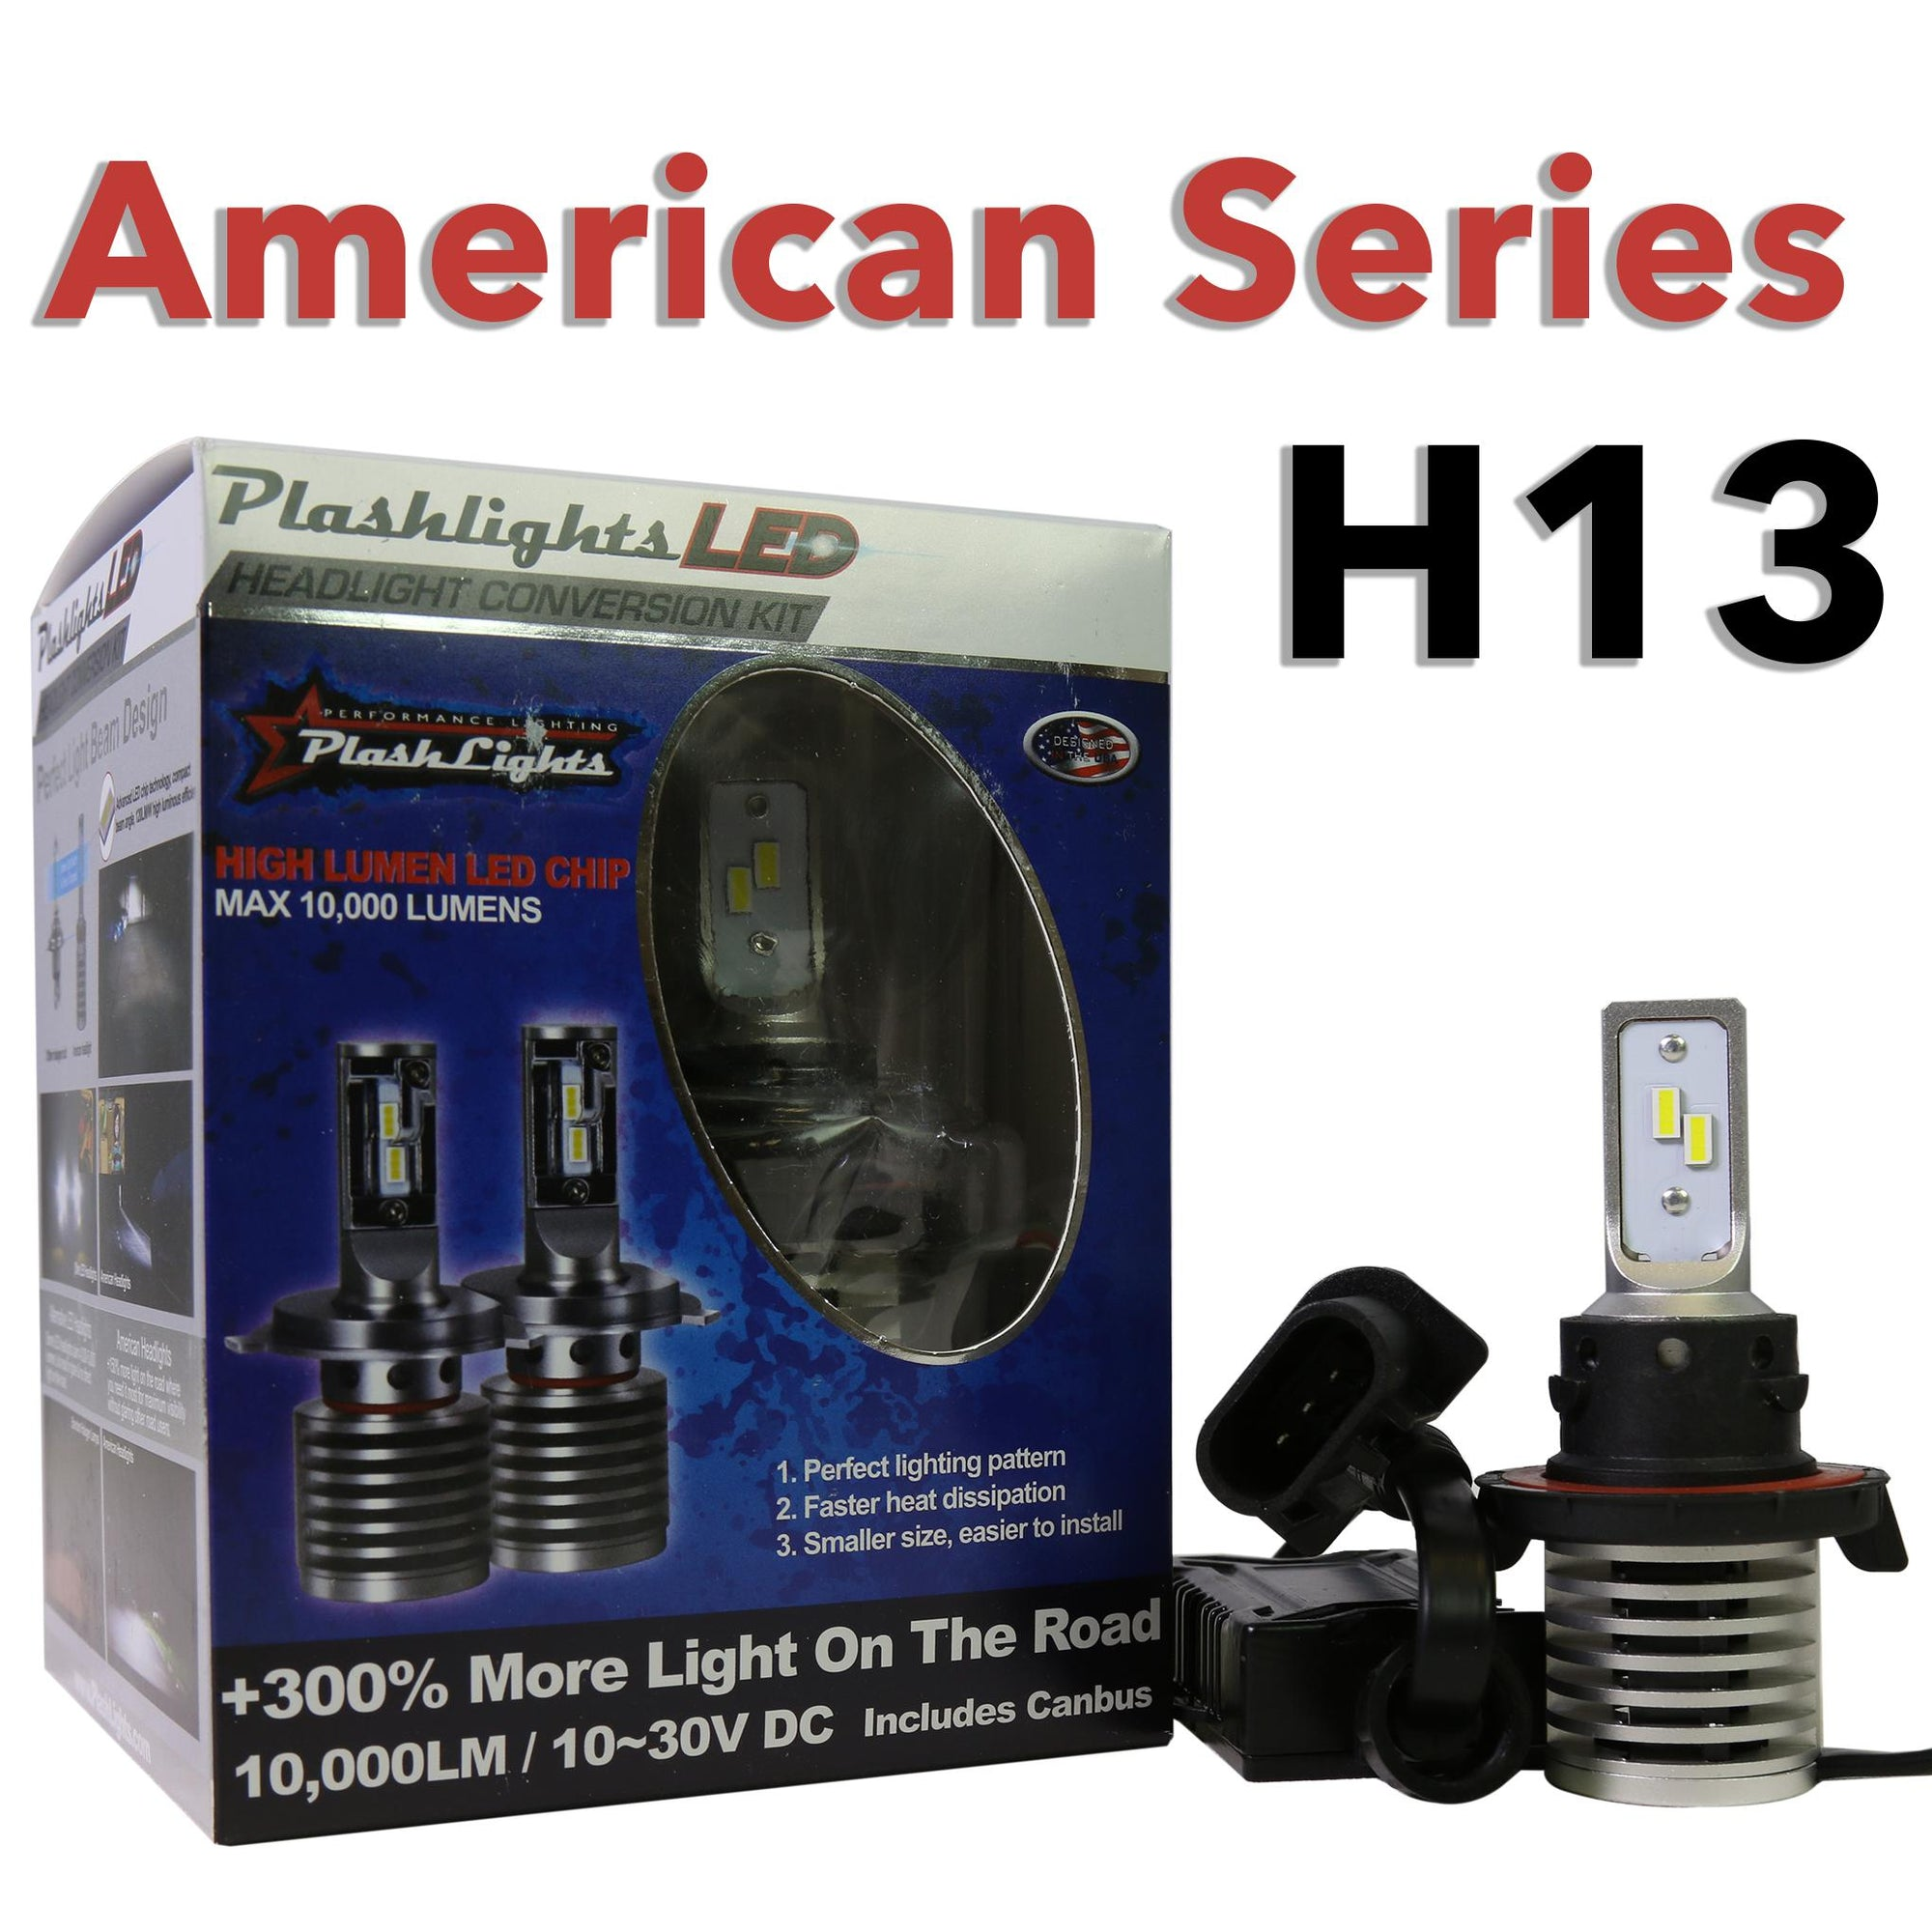 American Series H13 Brightest LED Headlight